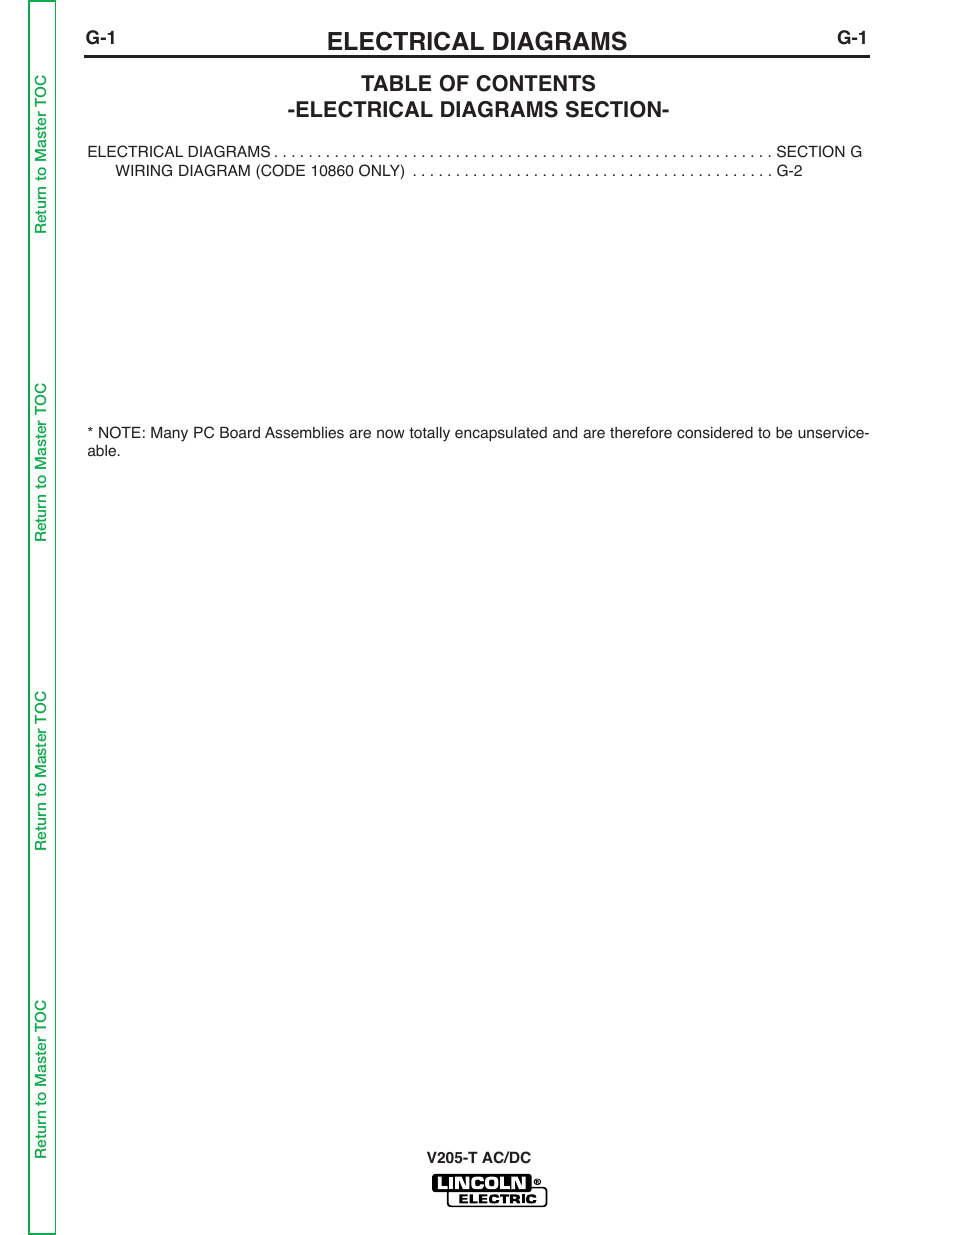 medium resolution of electrical diagrams lincoln electric invertec v205 t user manual page 107 109